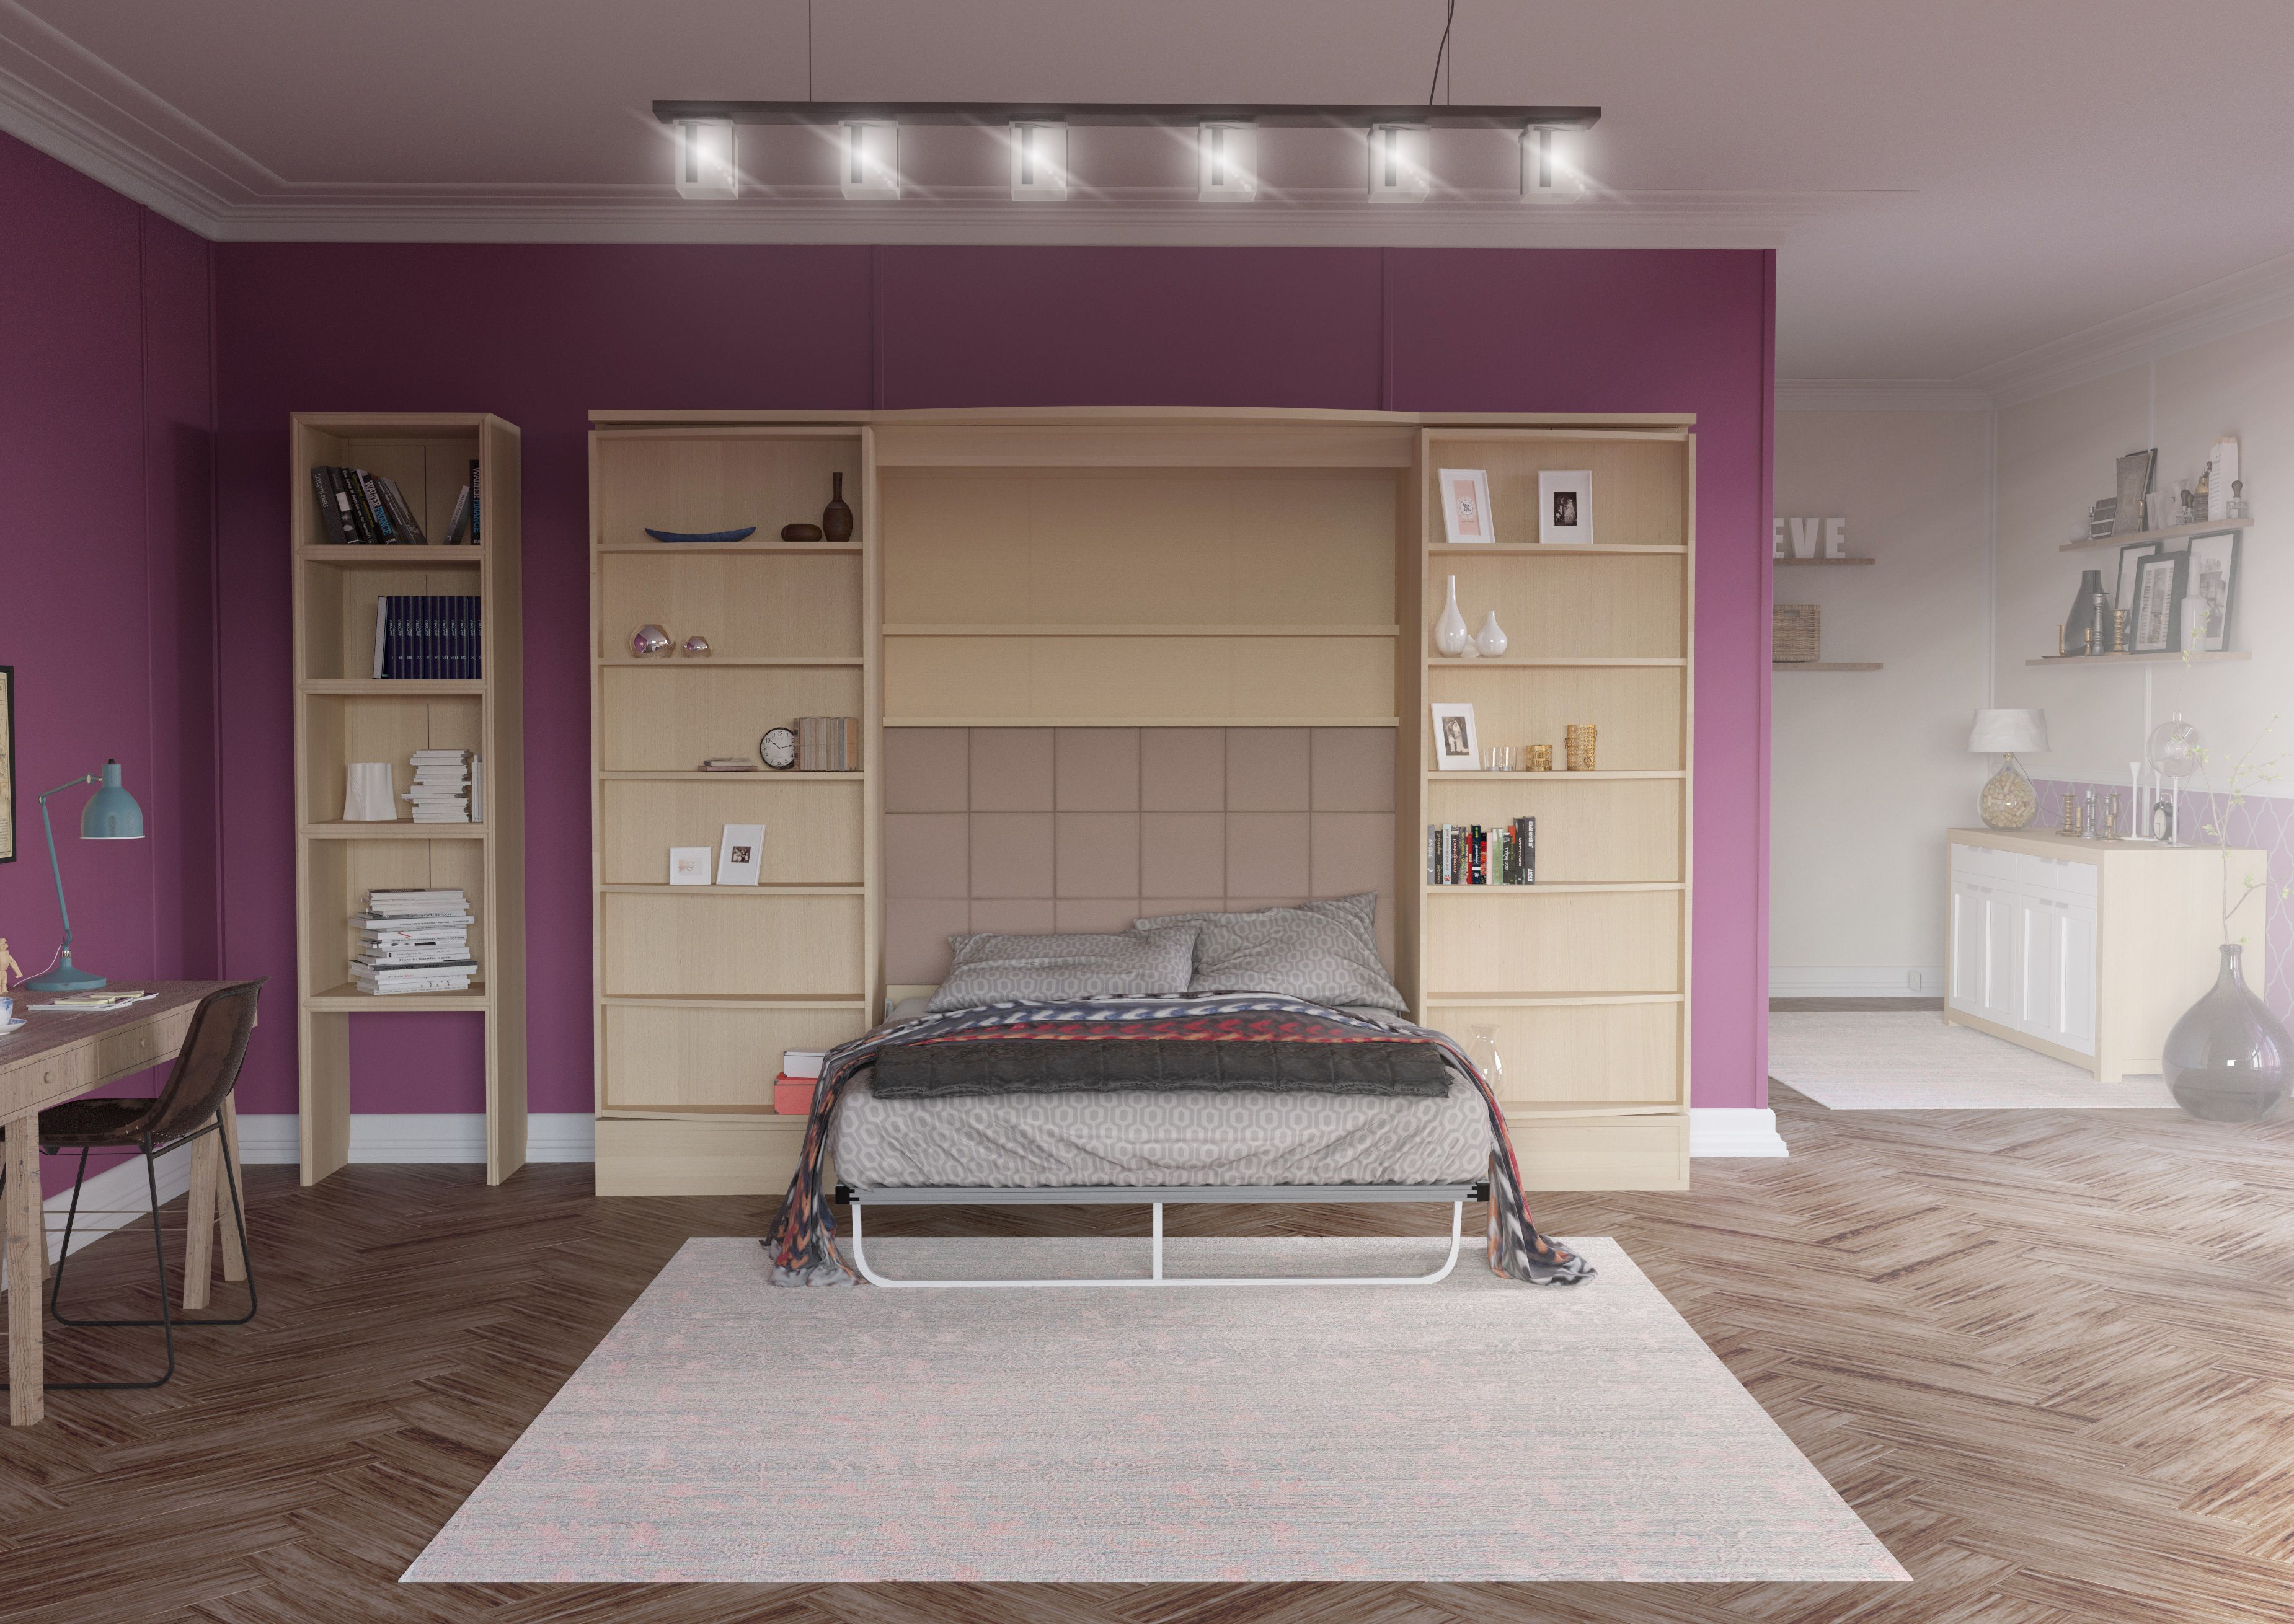 Vetrino Queen Wall Bed Wall bed, Bed, Space saving beds